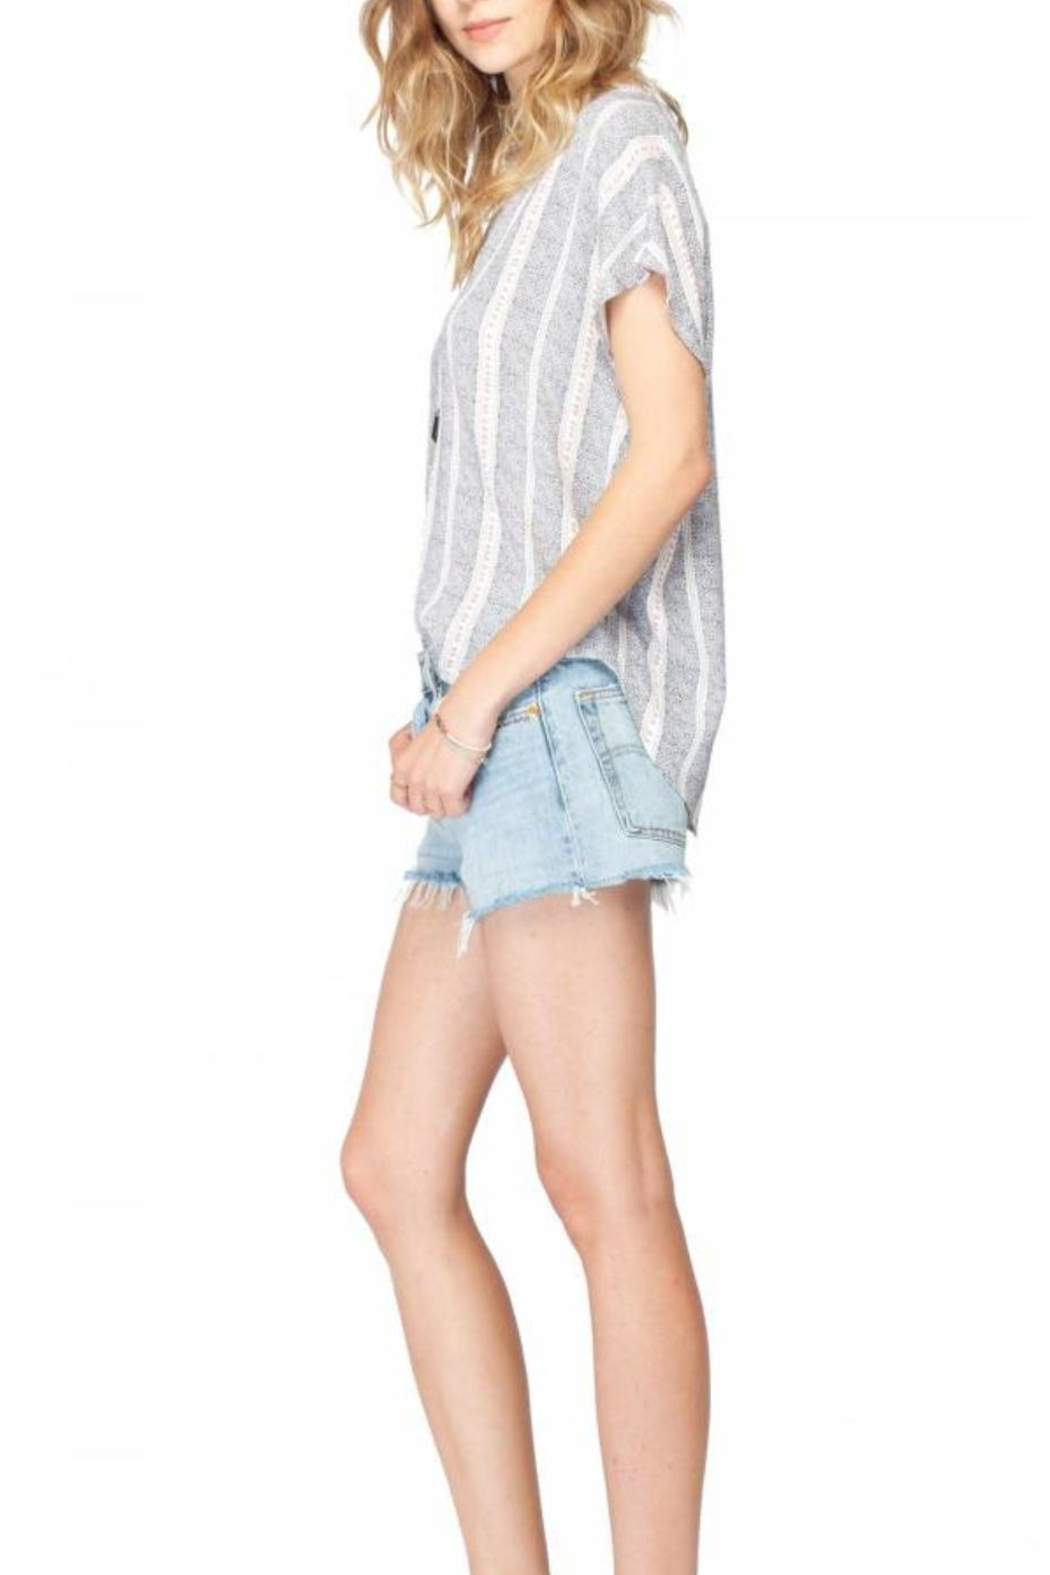 Gentle Fawn Sleeveless Lightweight Woven Top - Front Full Image